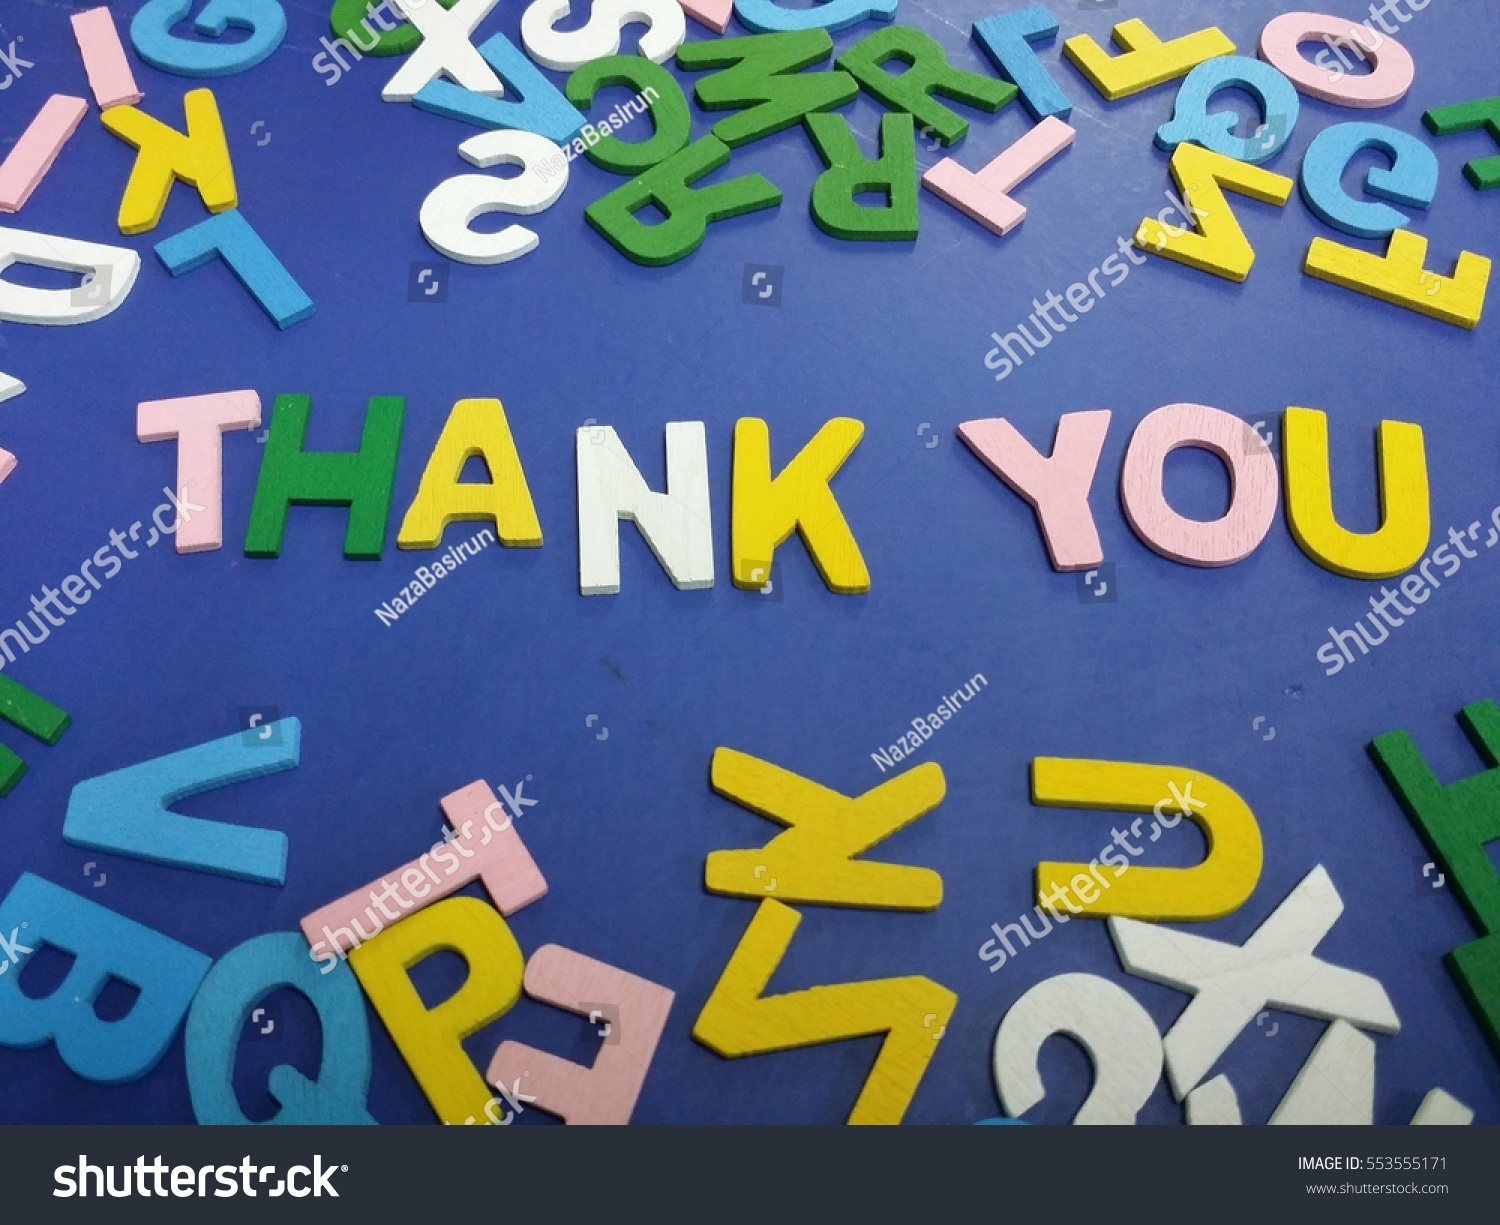 Thank you spelled with wood alphabets